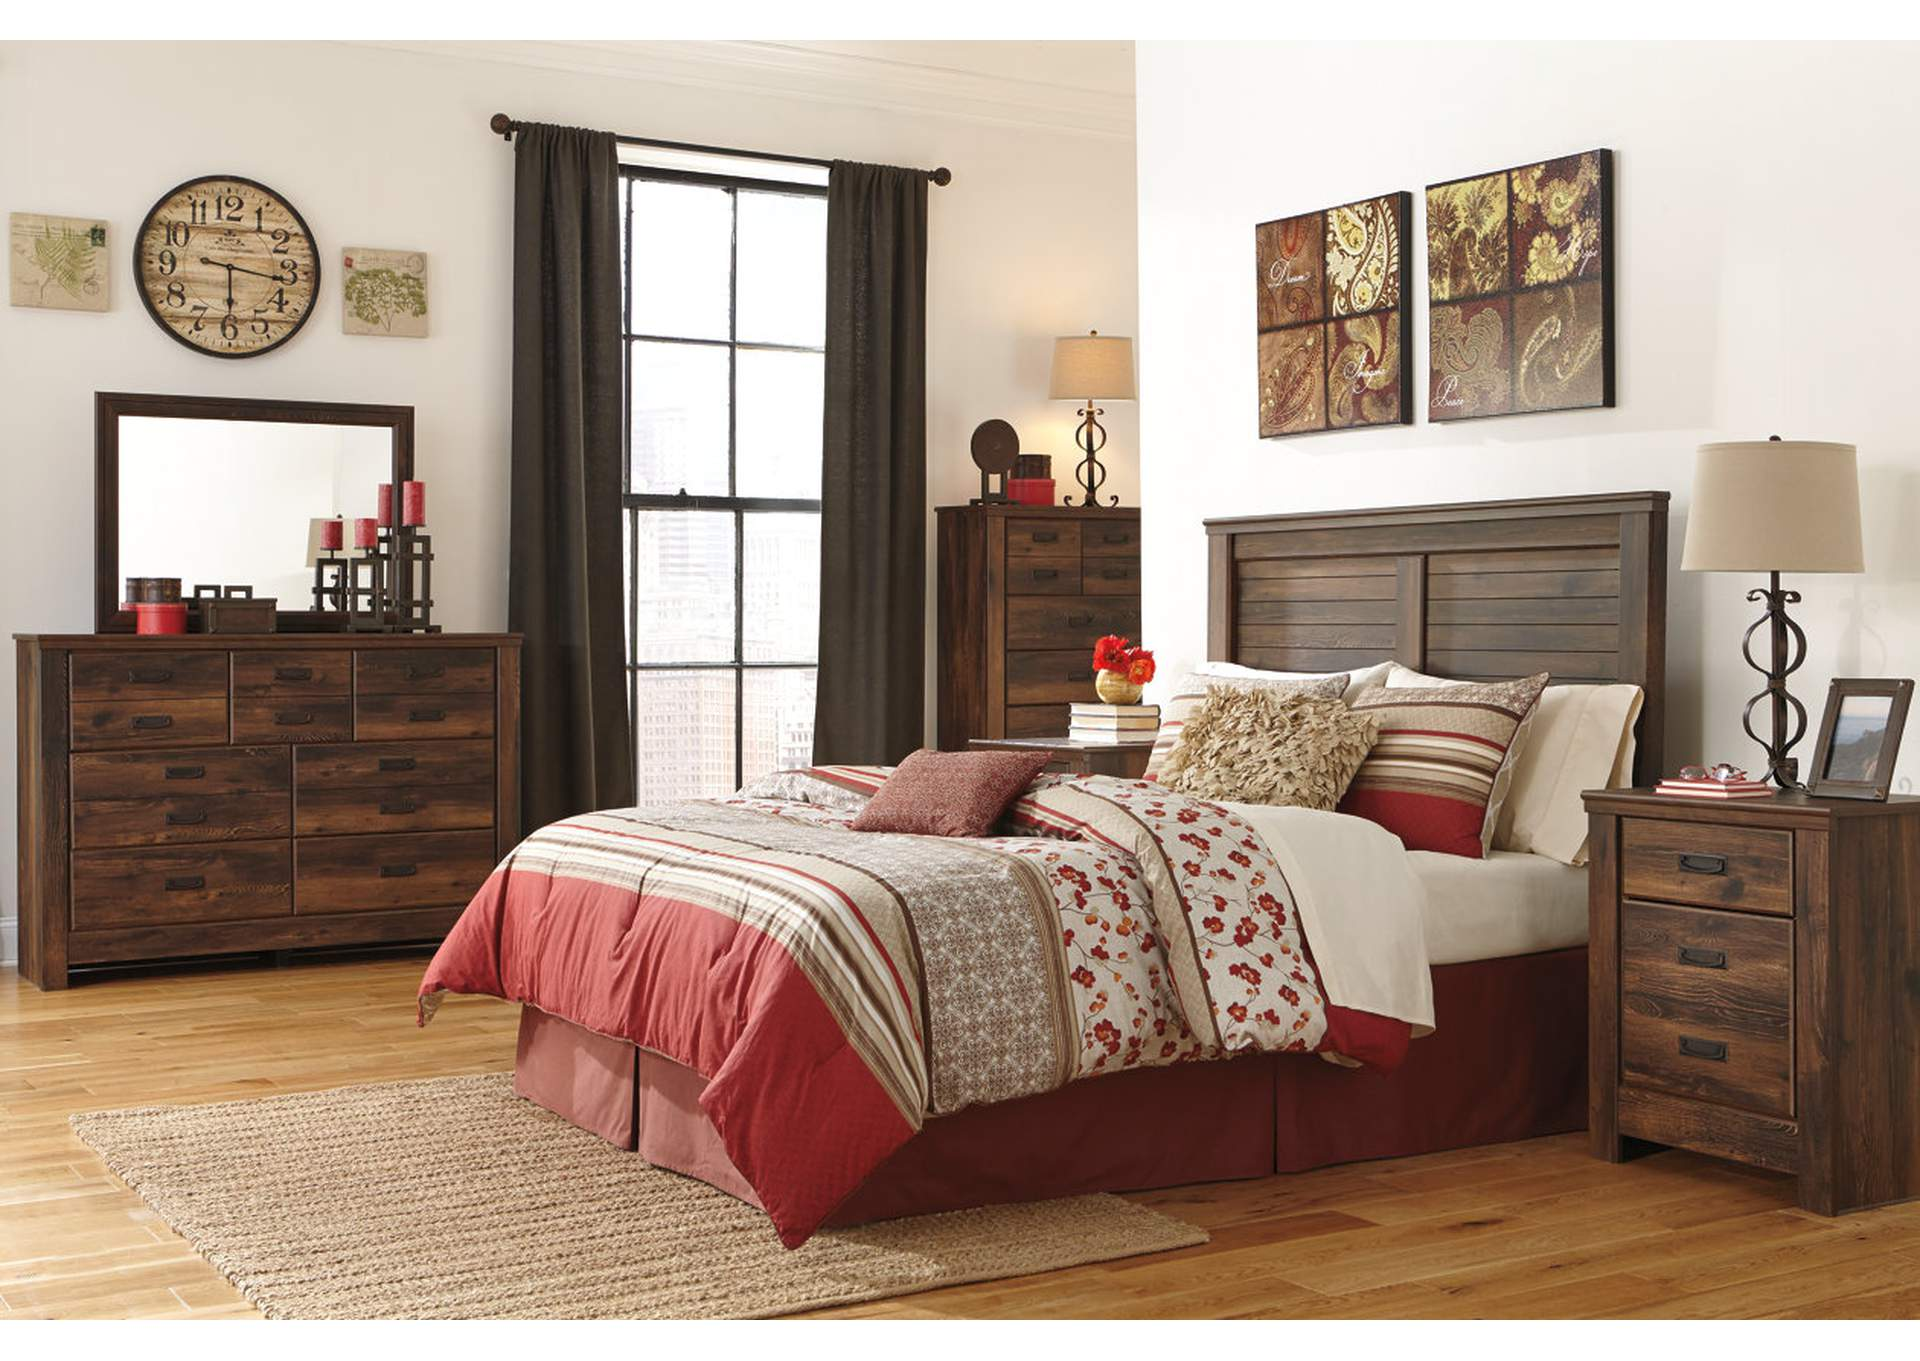 Quinden King Panel Headboard w/Dresser, Mirror & Drawer Chest,Signature Design By Ashley